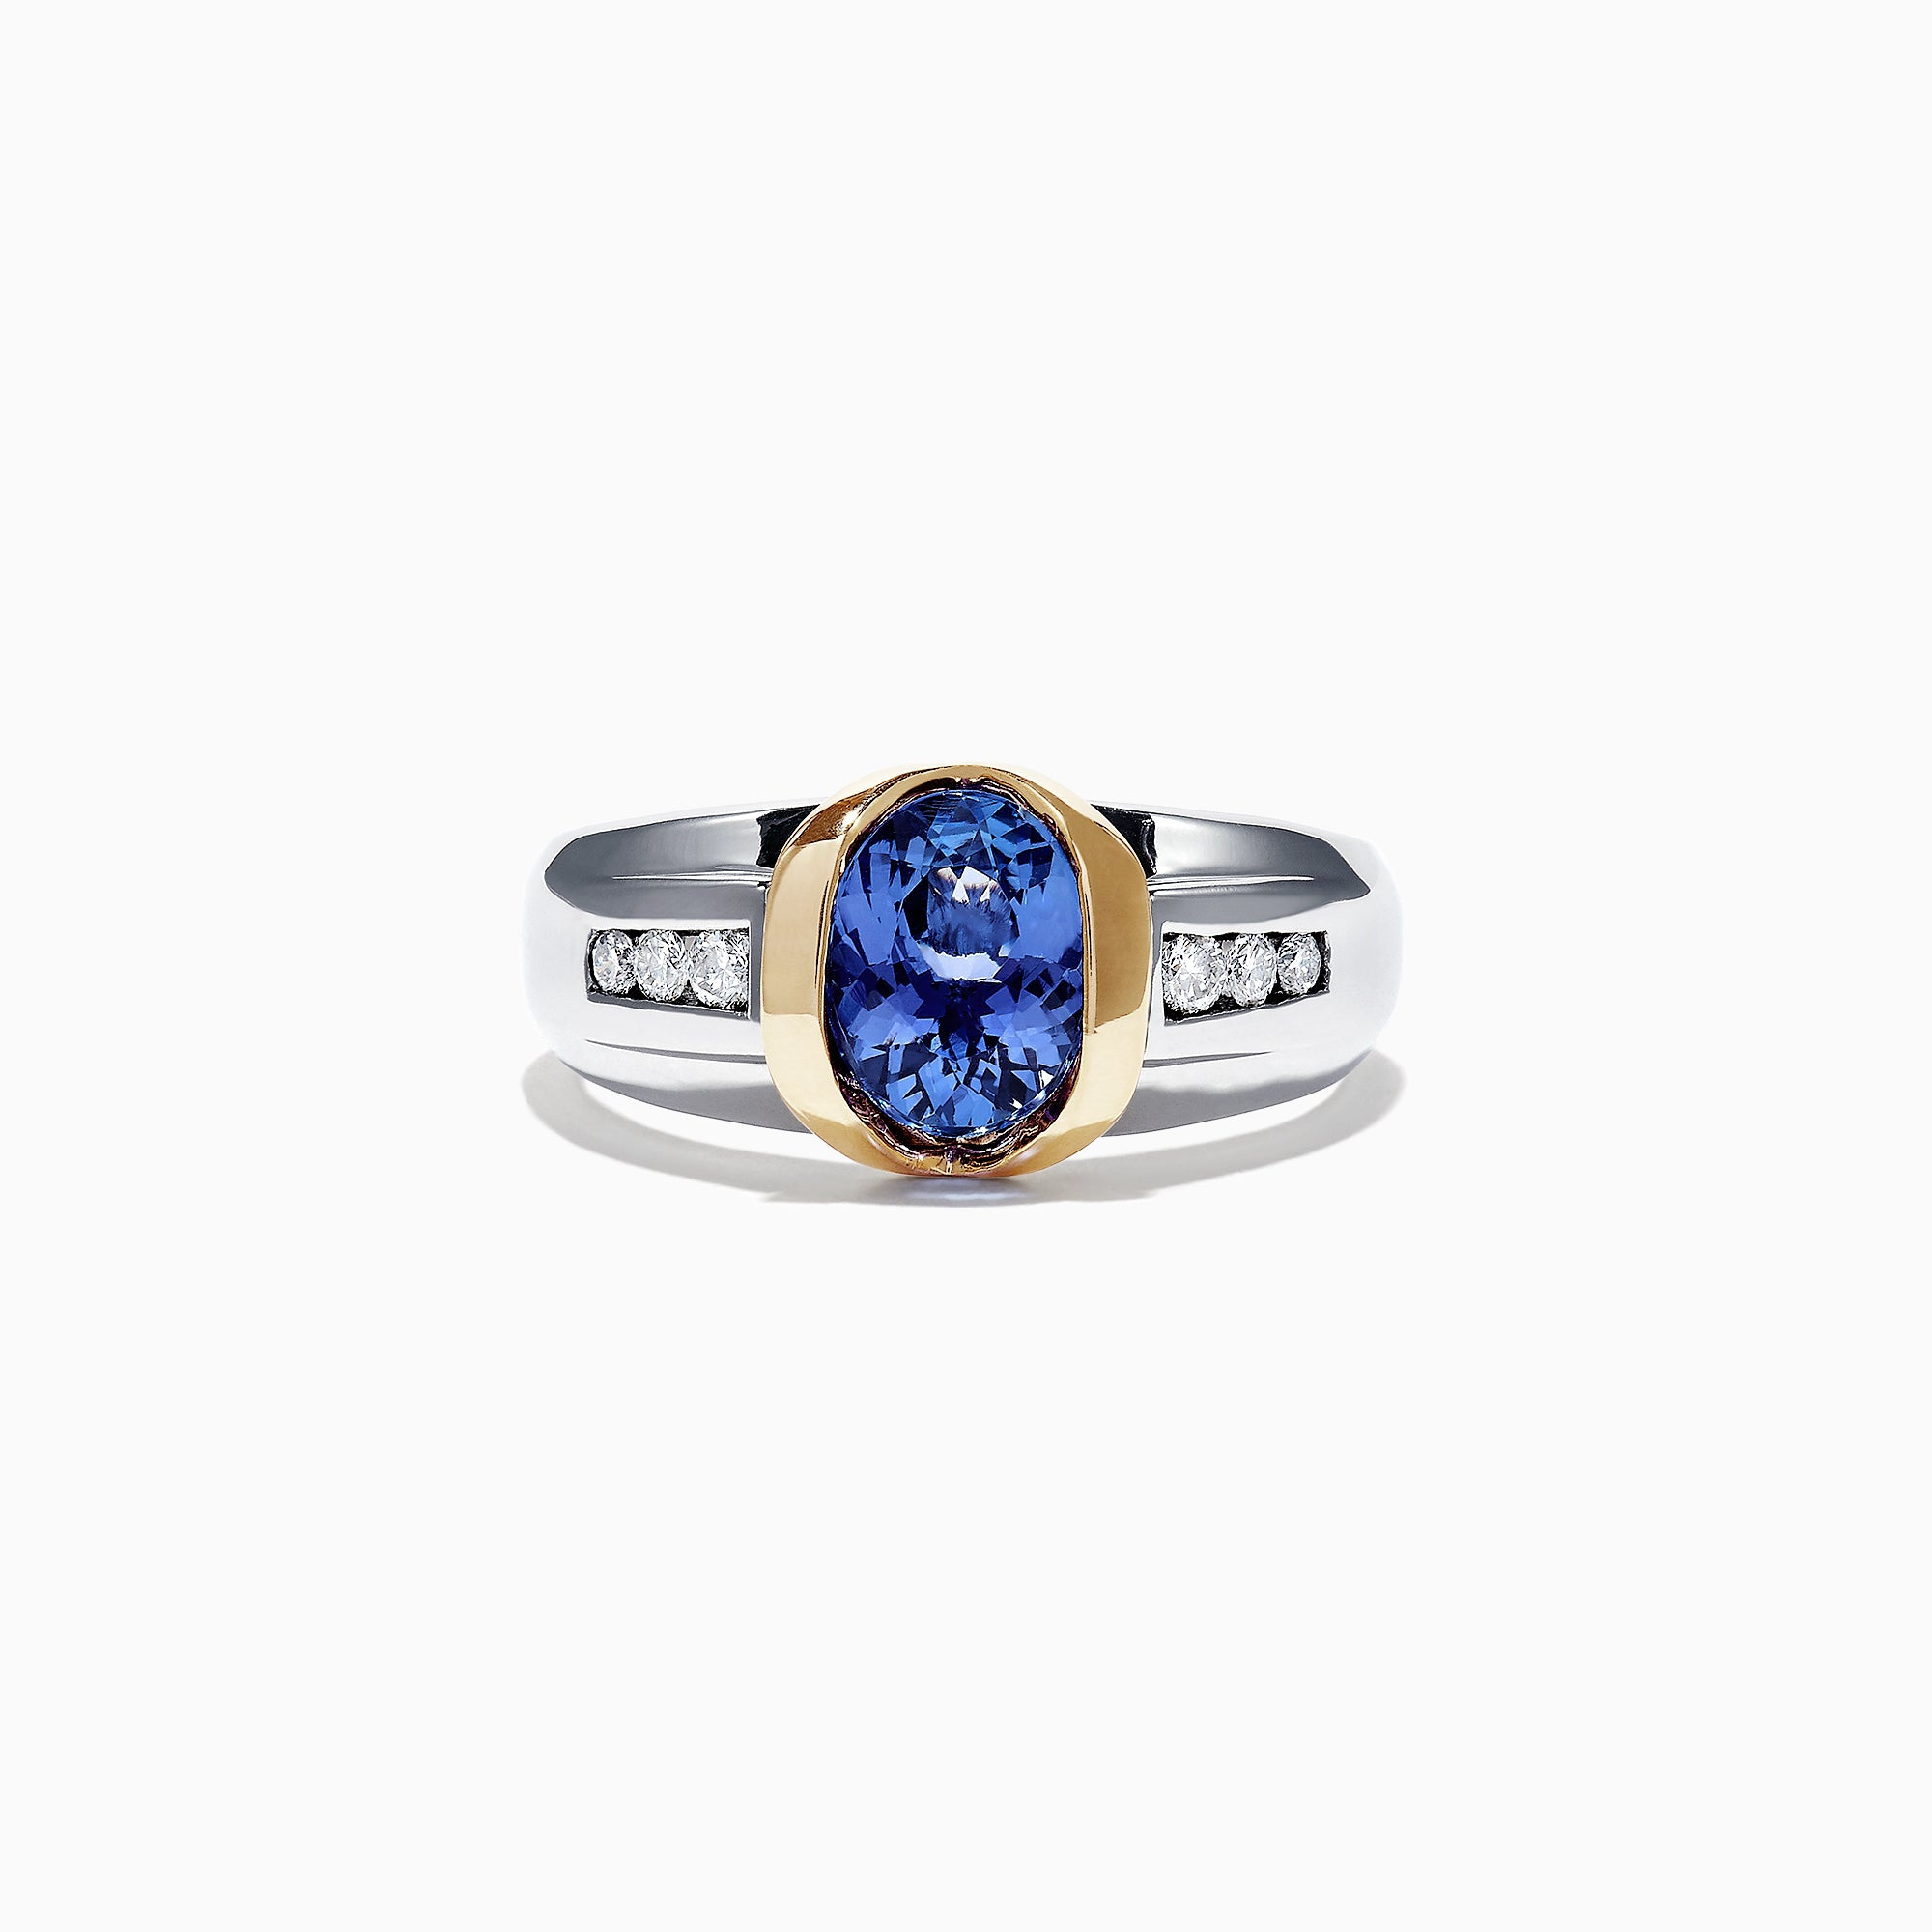 Effy Men's 14K Two-Tone Gold Tanzanite Diamond Ring, 1.90 TCW